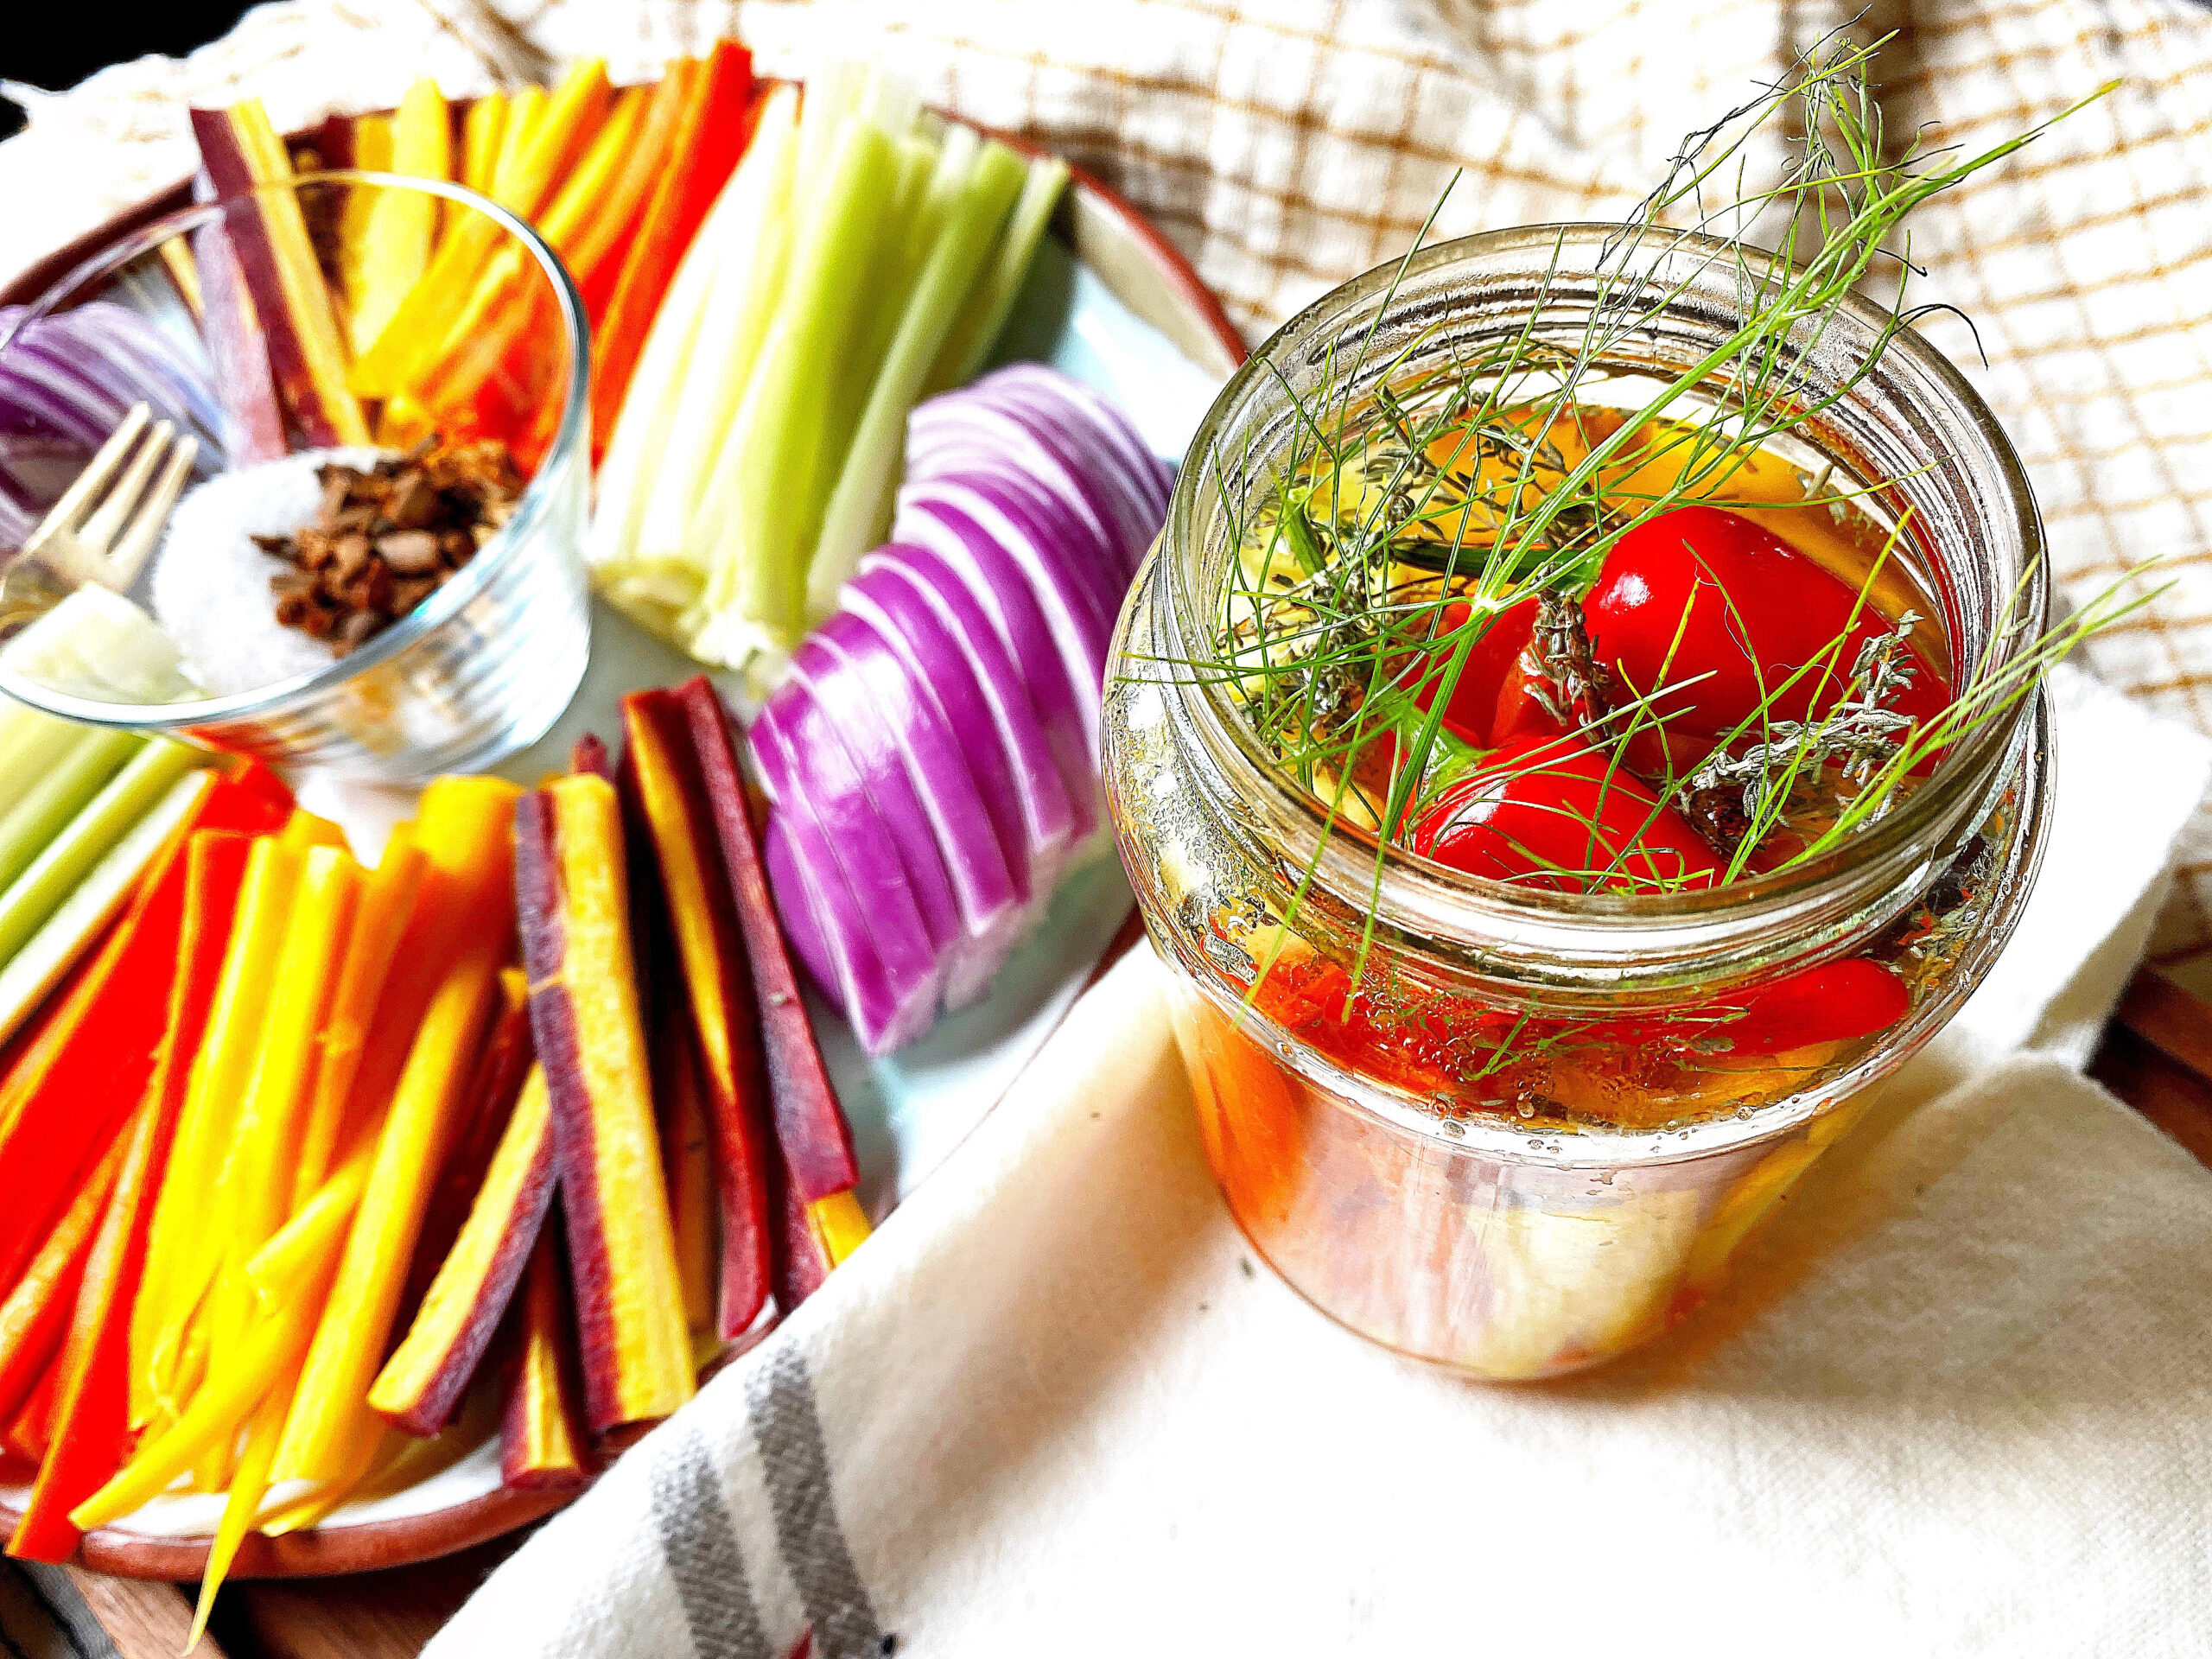 Quick Mulled Spice Pickled Veggies